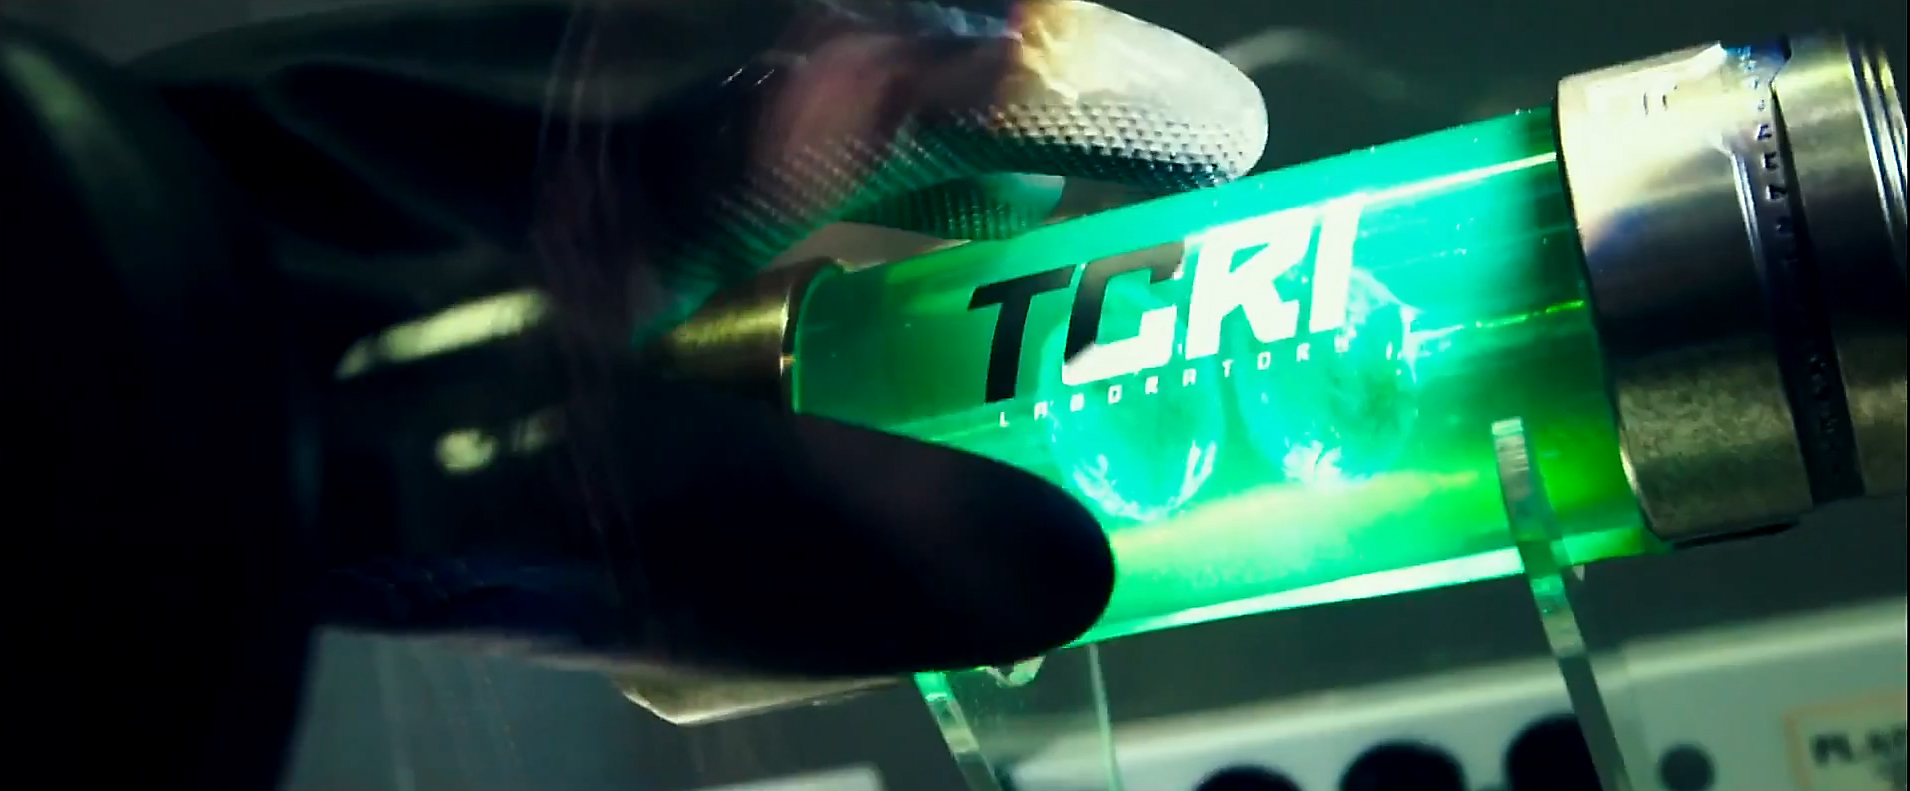 TEENAGE MUTANT NINJA-Official Poster Banner PROMO TRAILER-27MARÇO2014-06